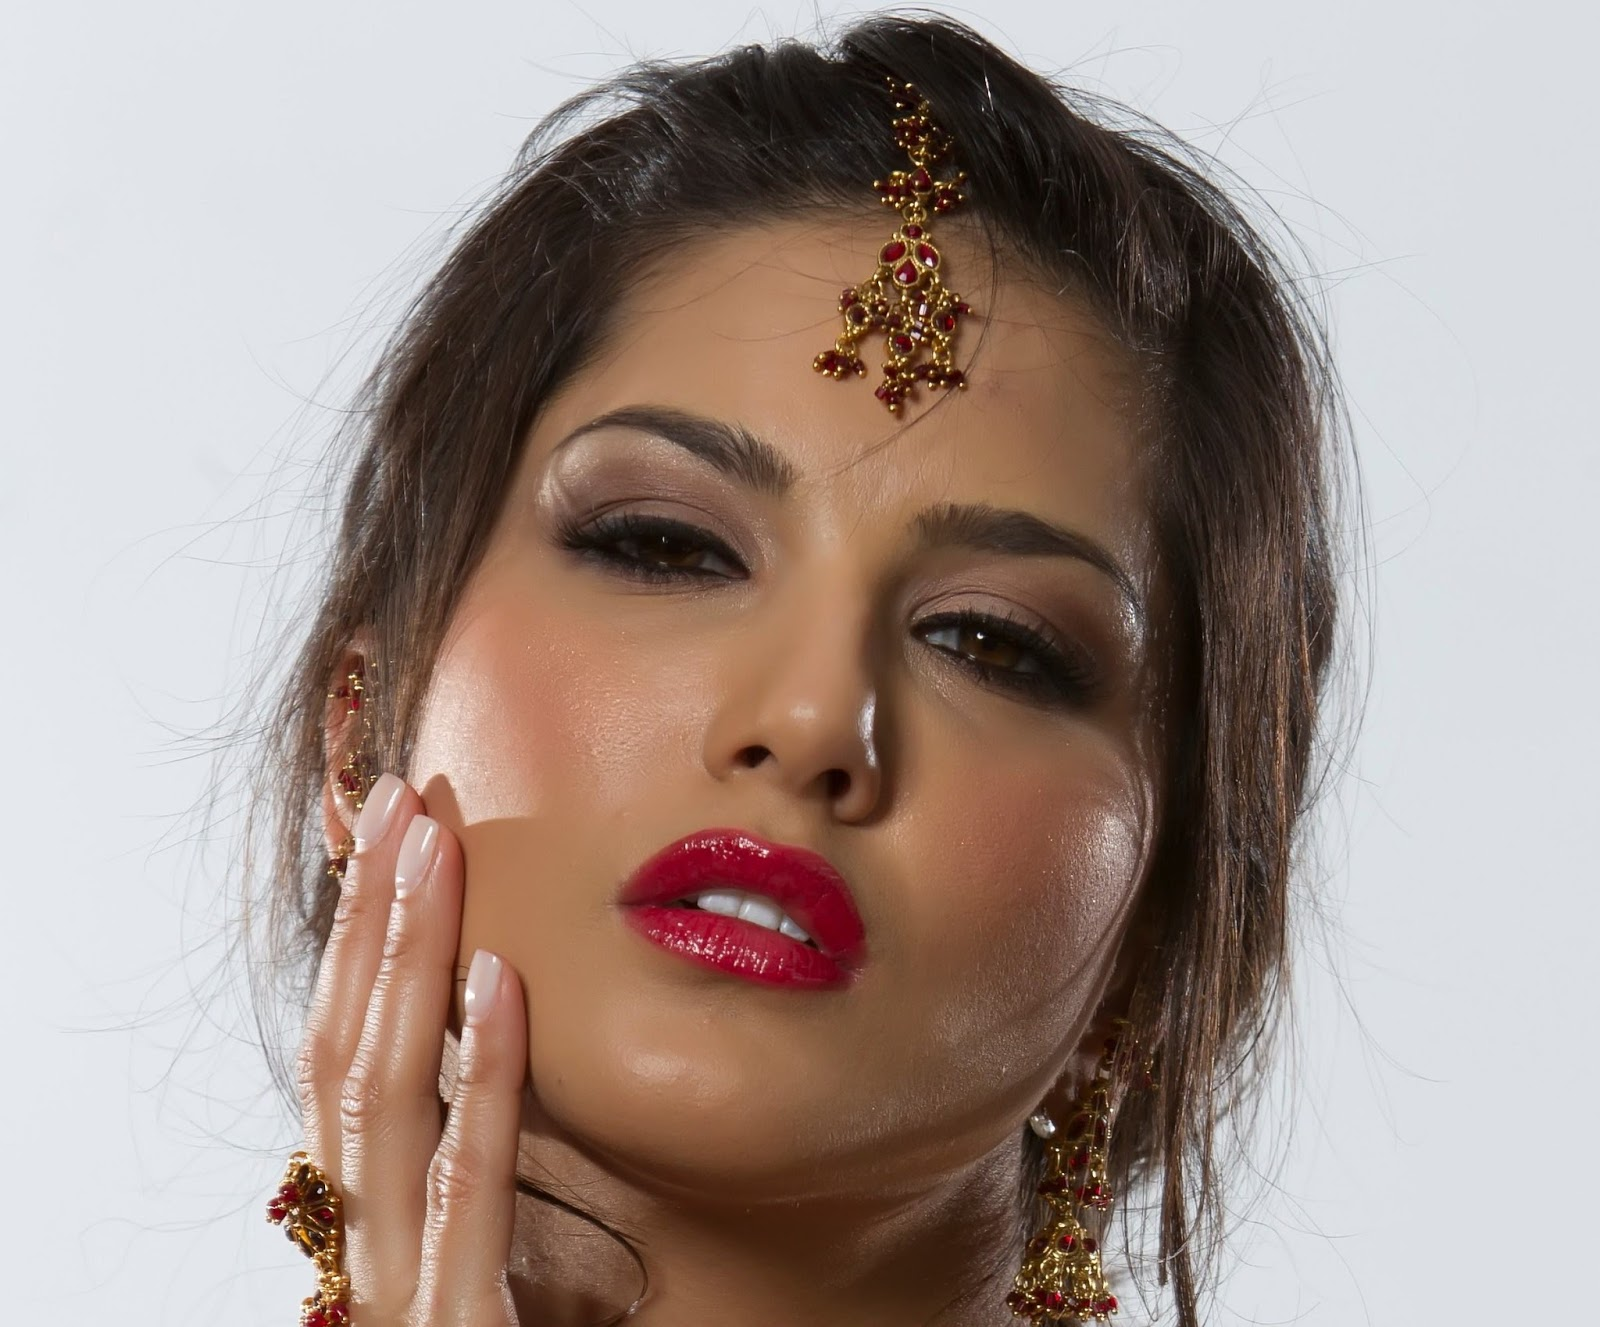 Bollywod Actress Sunny Leone Hot Hd Wallpaper Download -5085